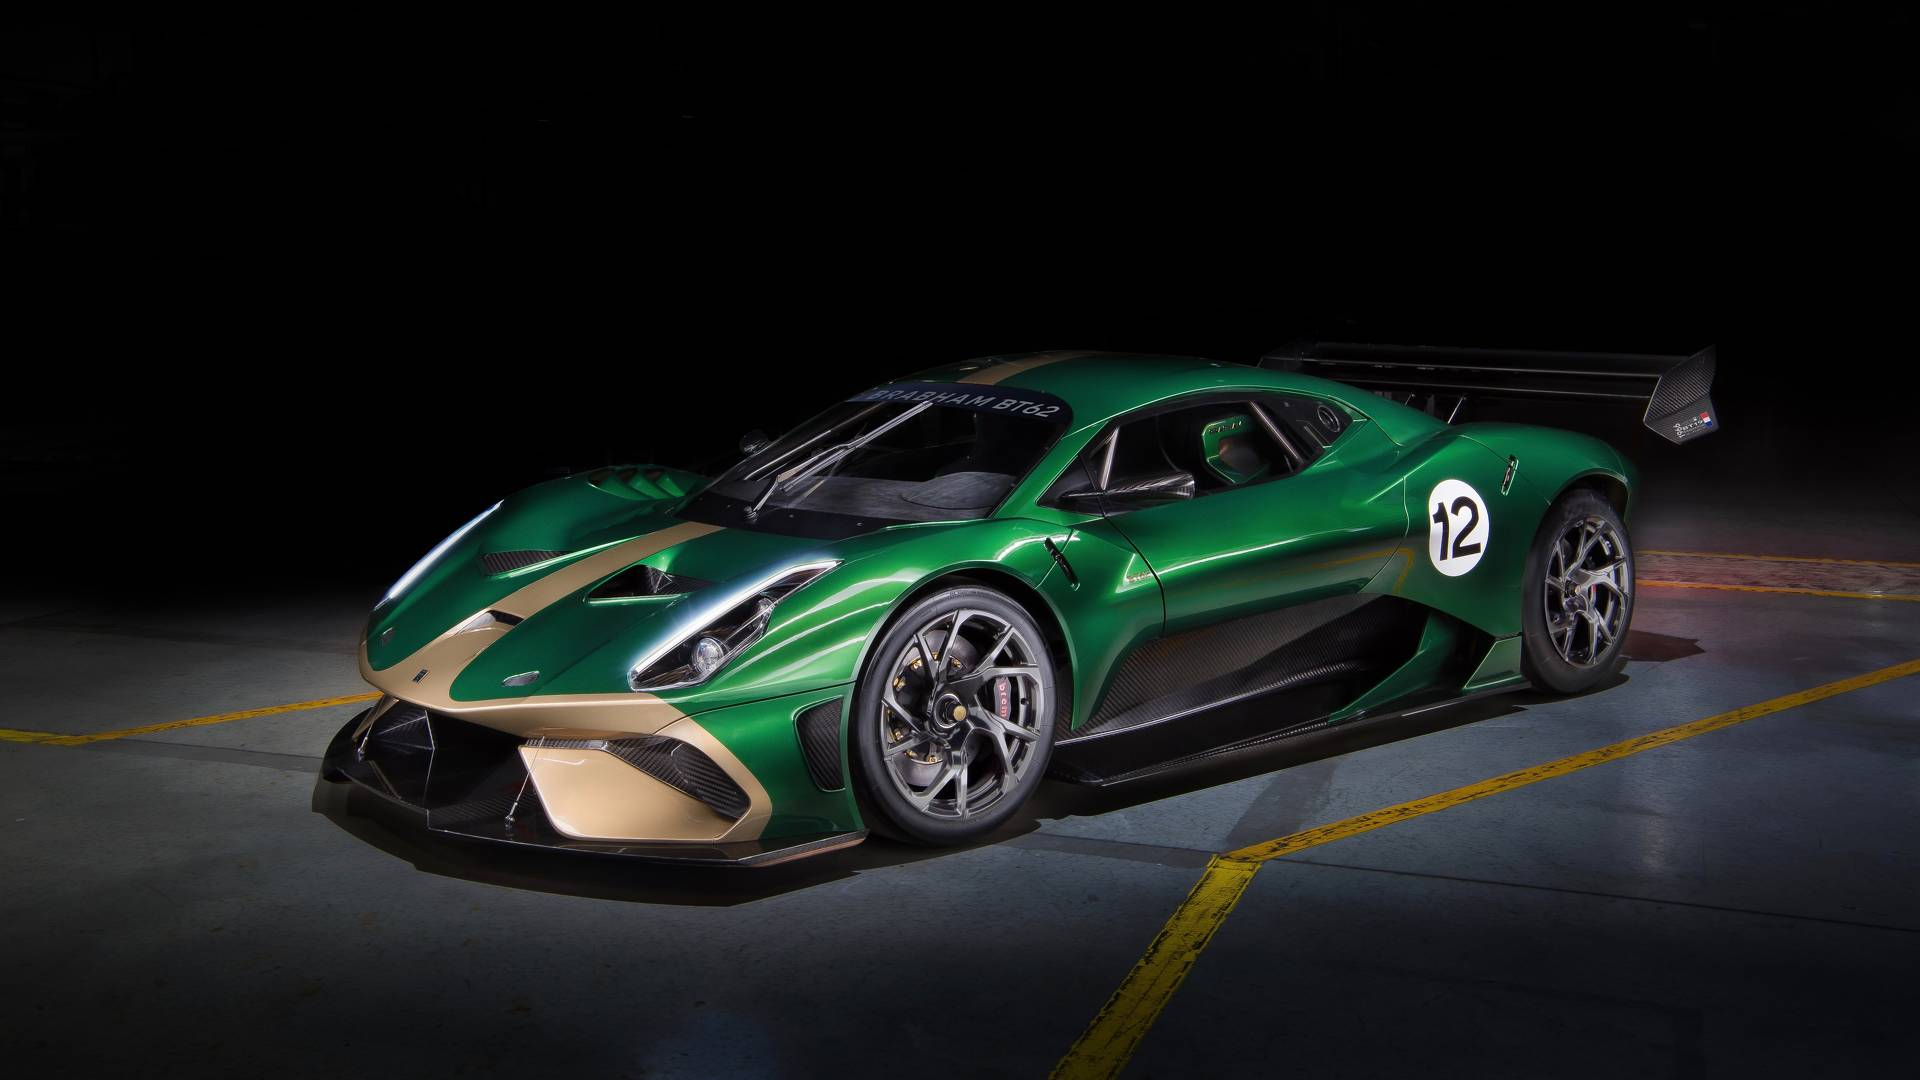 Brabham Automotive has revealed a limited series of Brabham BT62 supercars with over 700 'horses' (520+ kW) under the hood